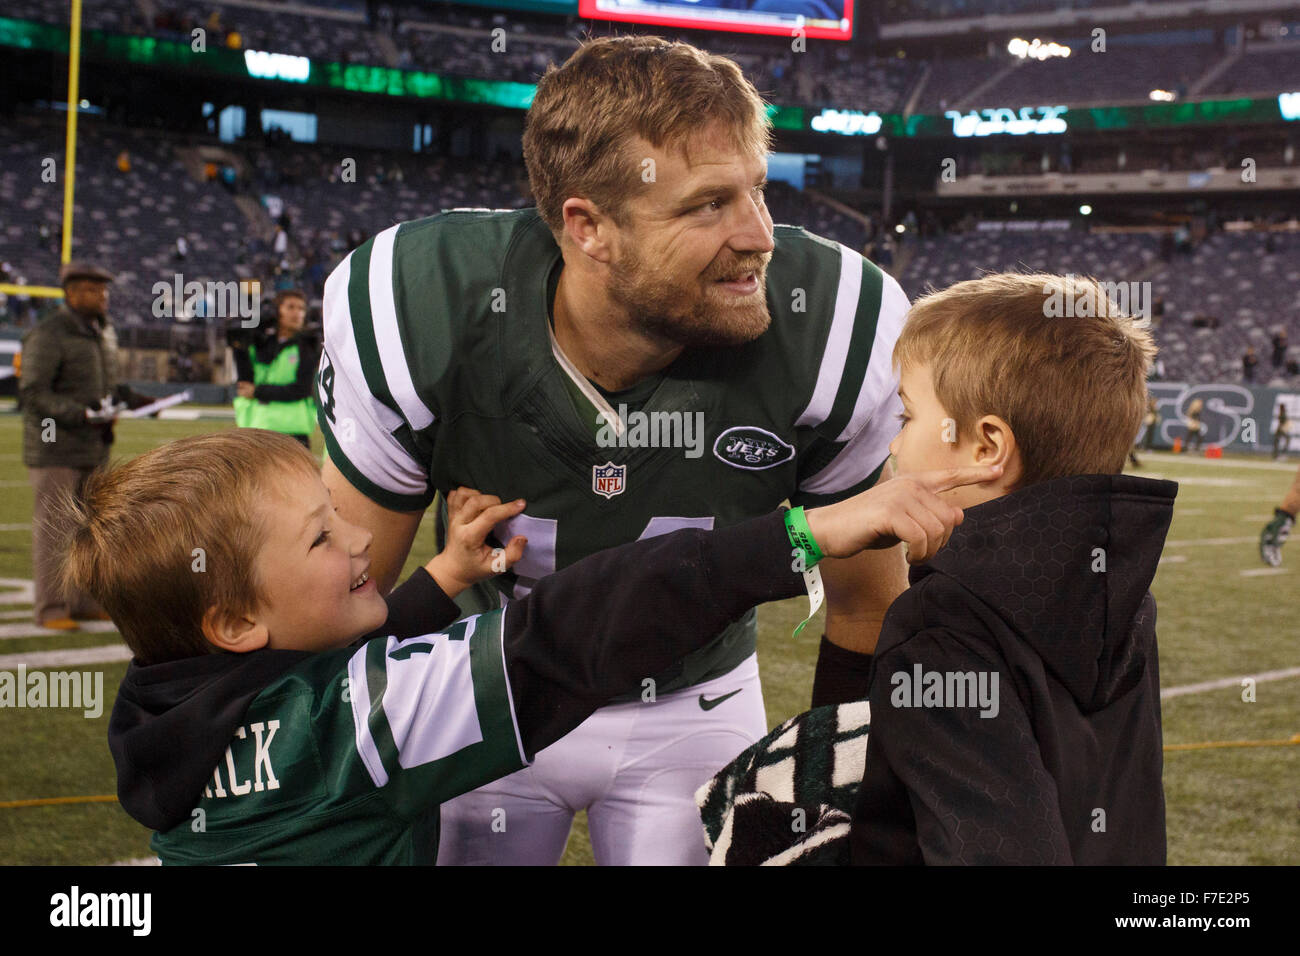 f9bb2b52 East Rutherford, New Jersey, USA. 29th Nov, 2015. New York Jets ...